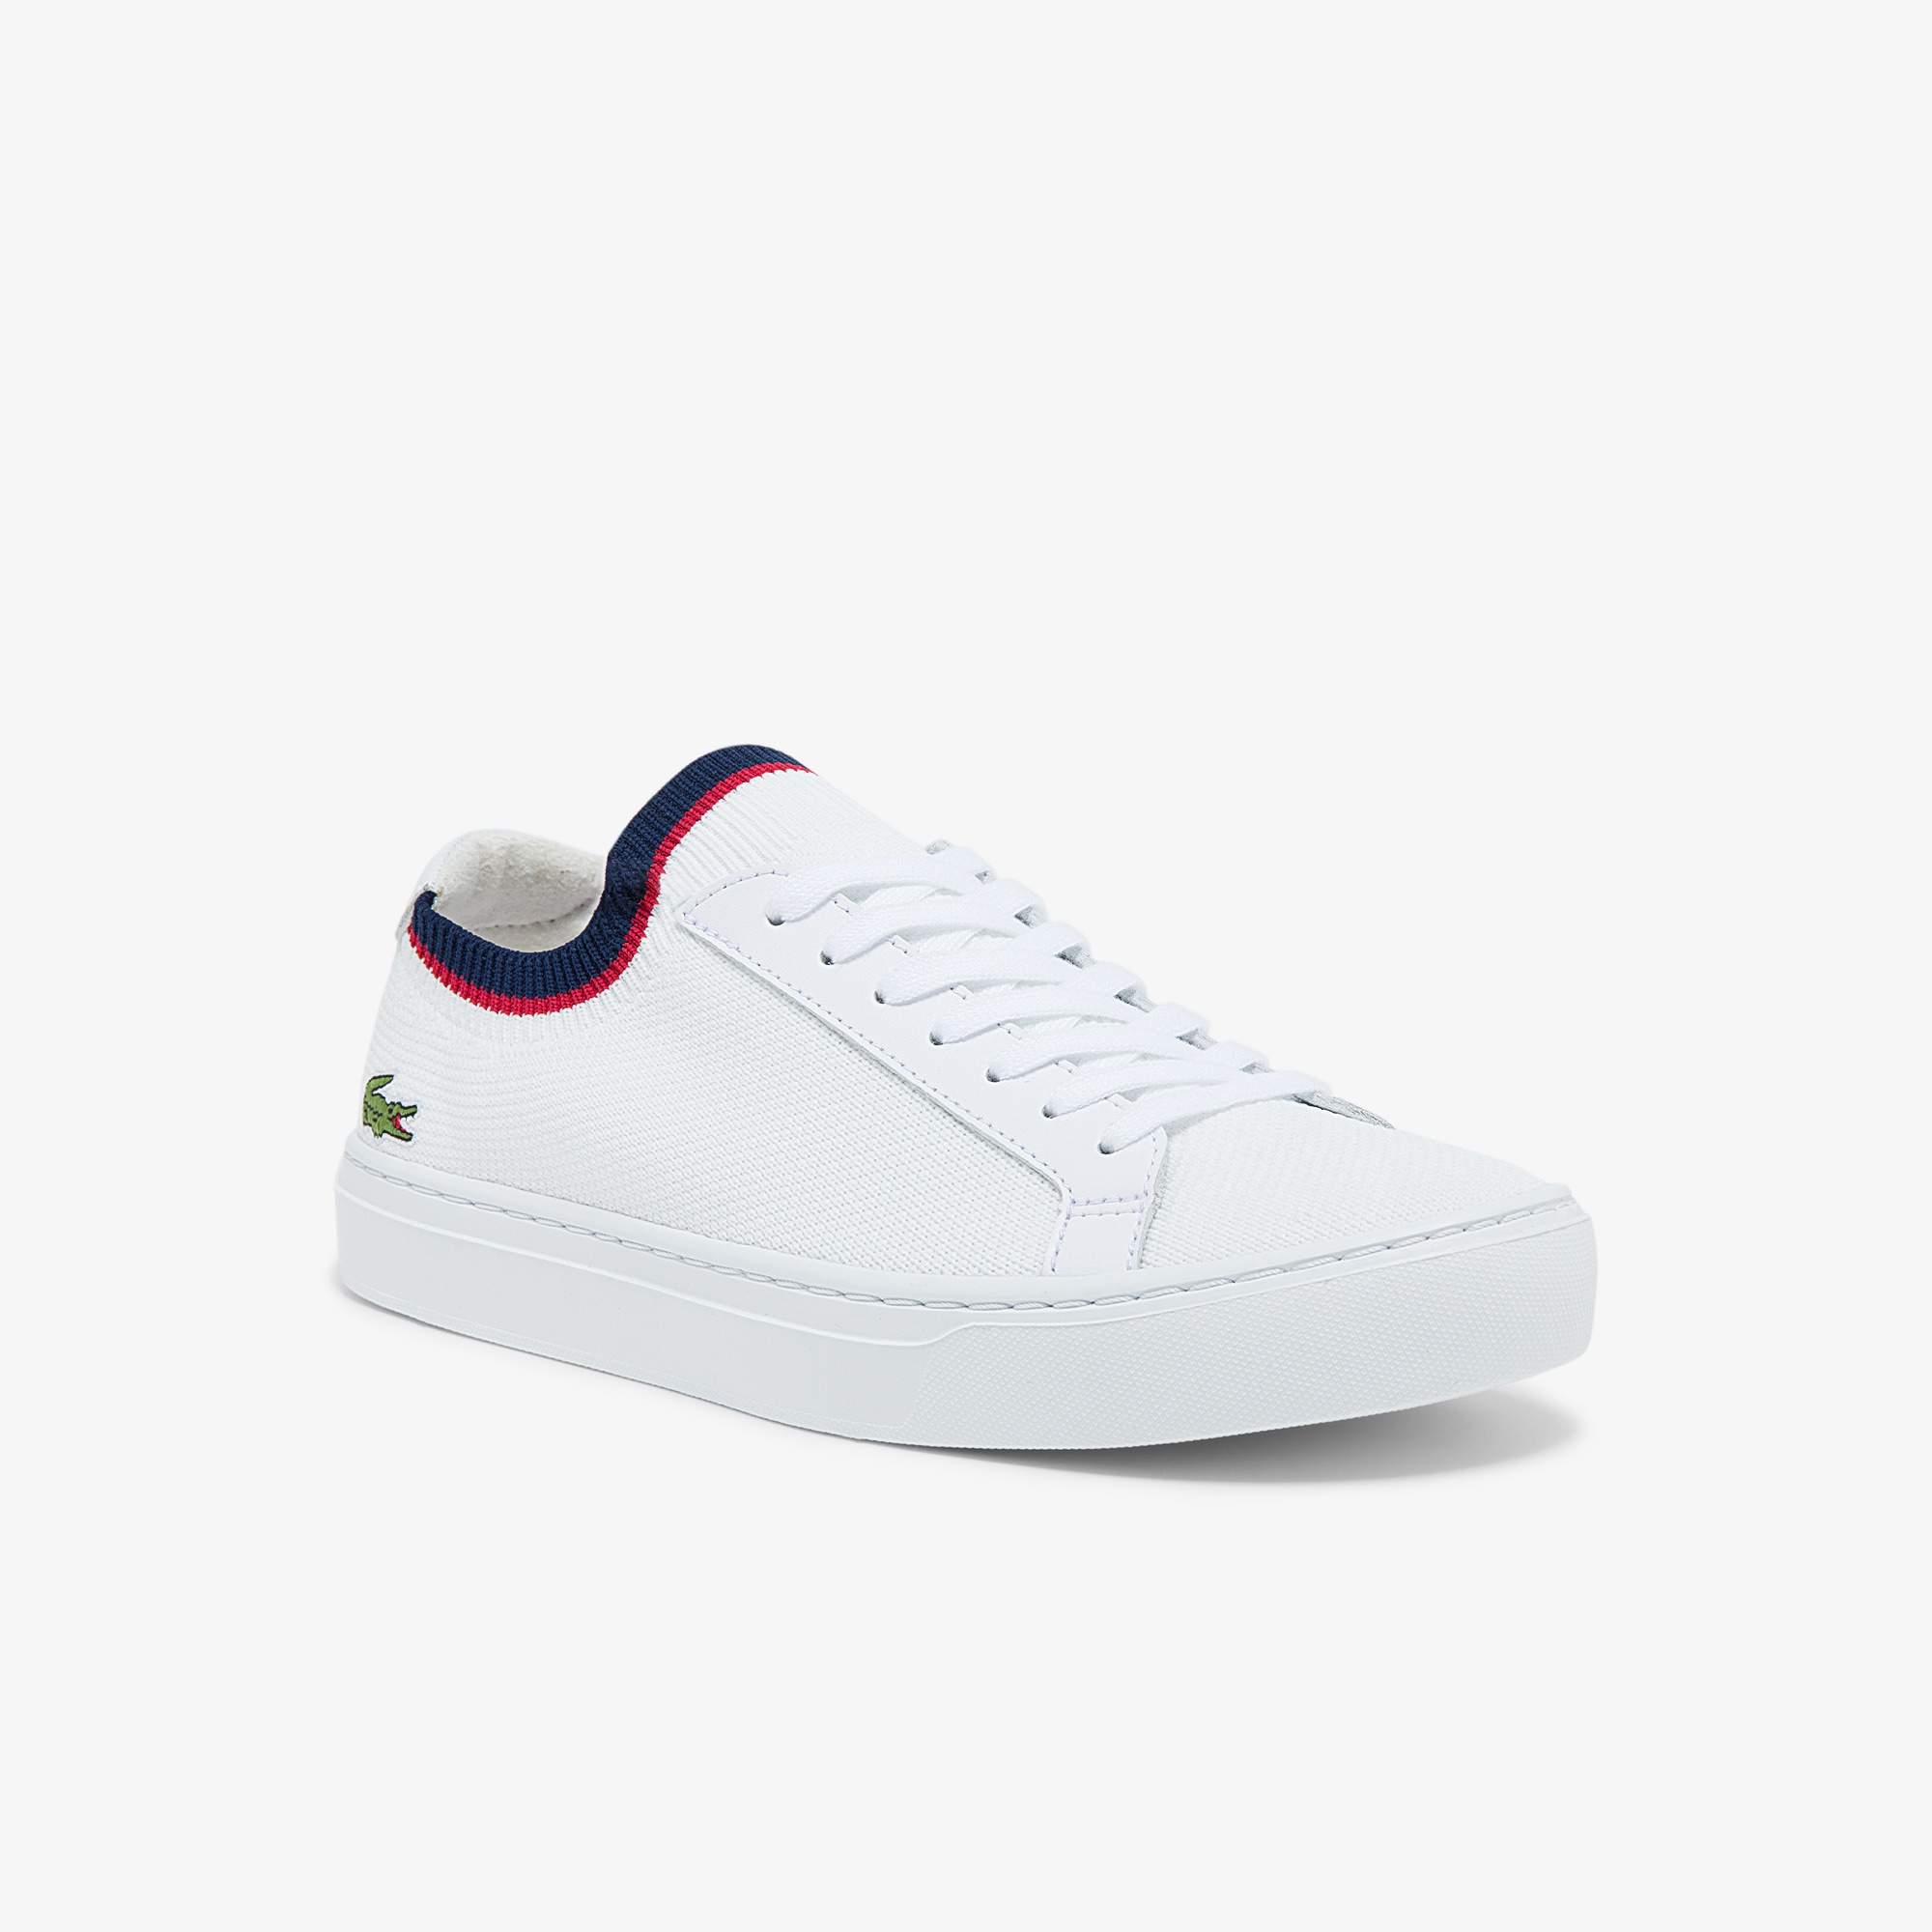 5fbb16383 Lacoste shoes for men  Sneakers